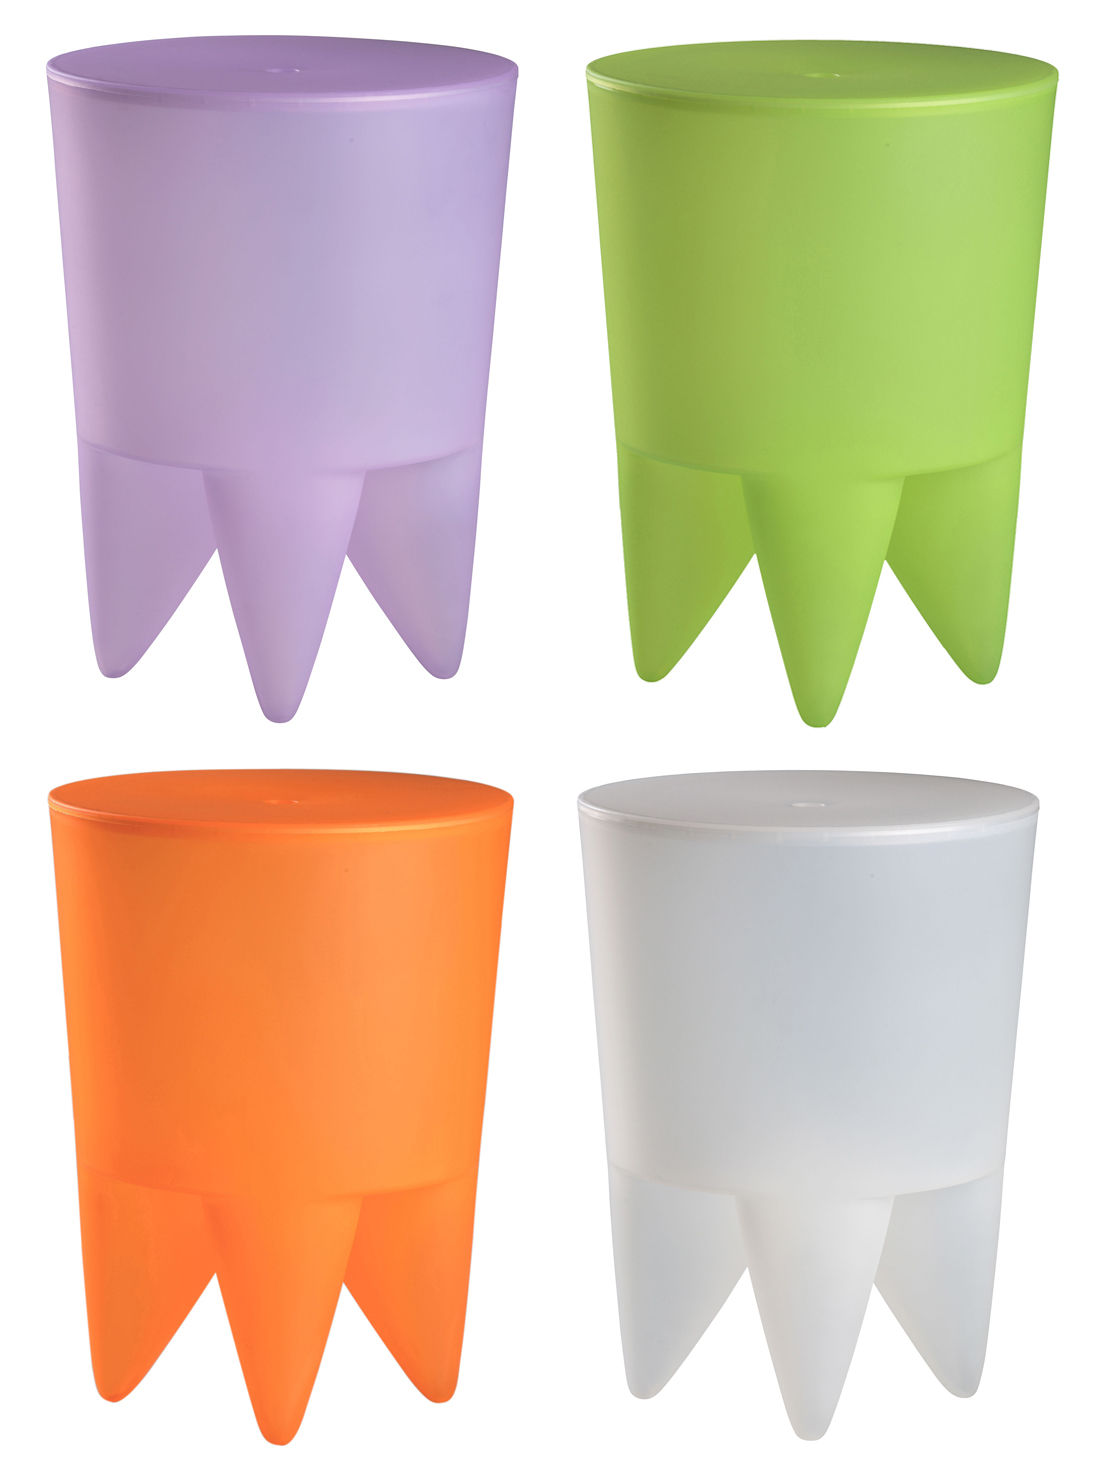 Miniature mini bubu set de 4 tabourets violet vert orange - Tabouret bubu philippe starck ...